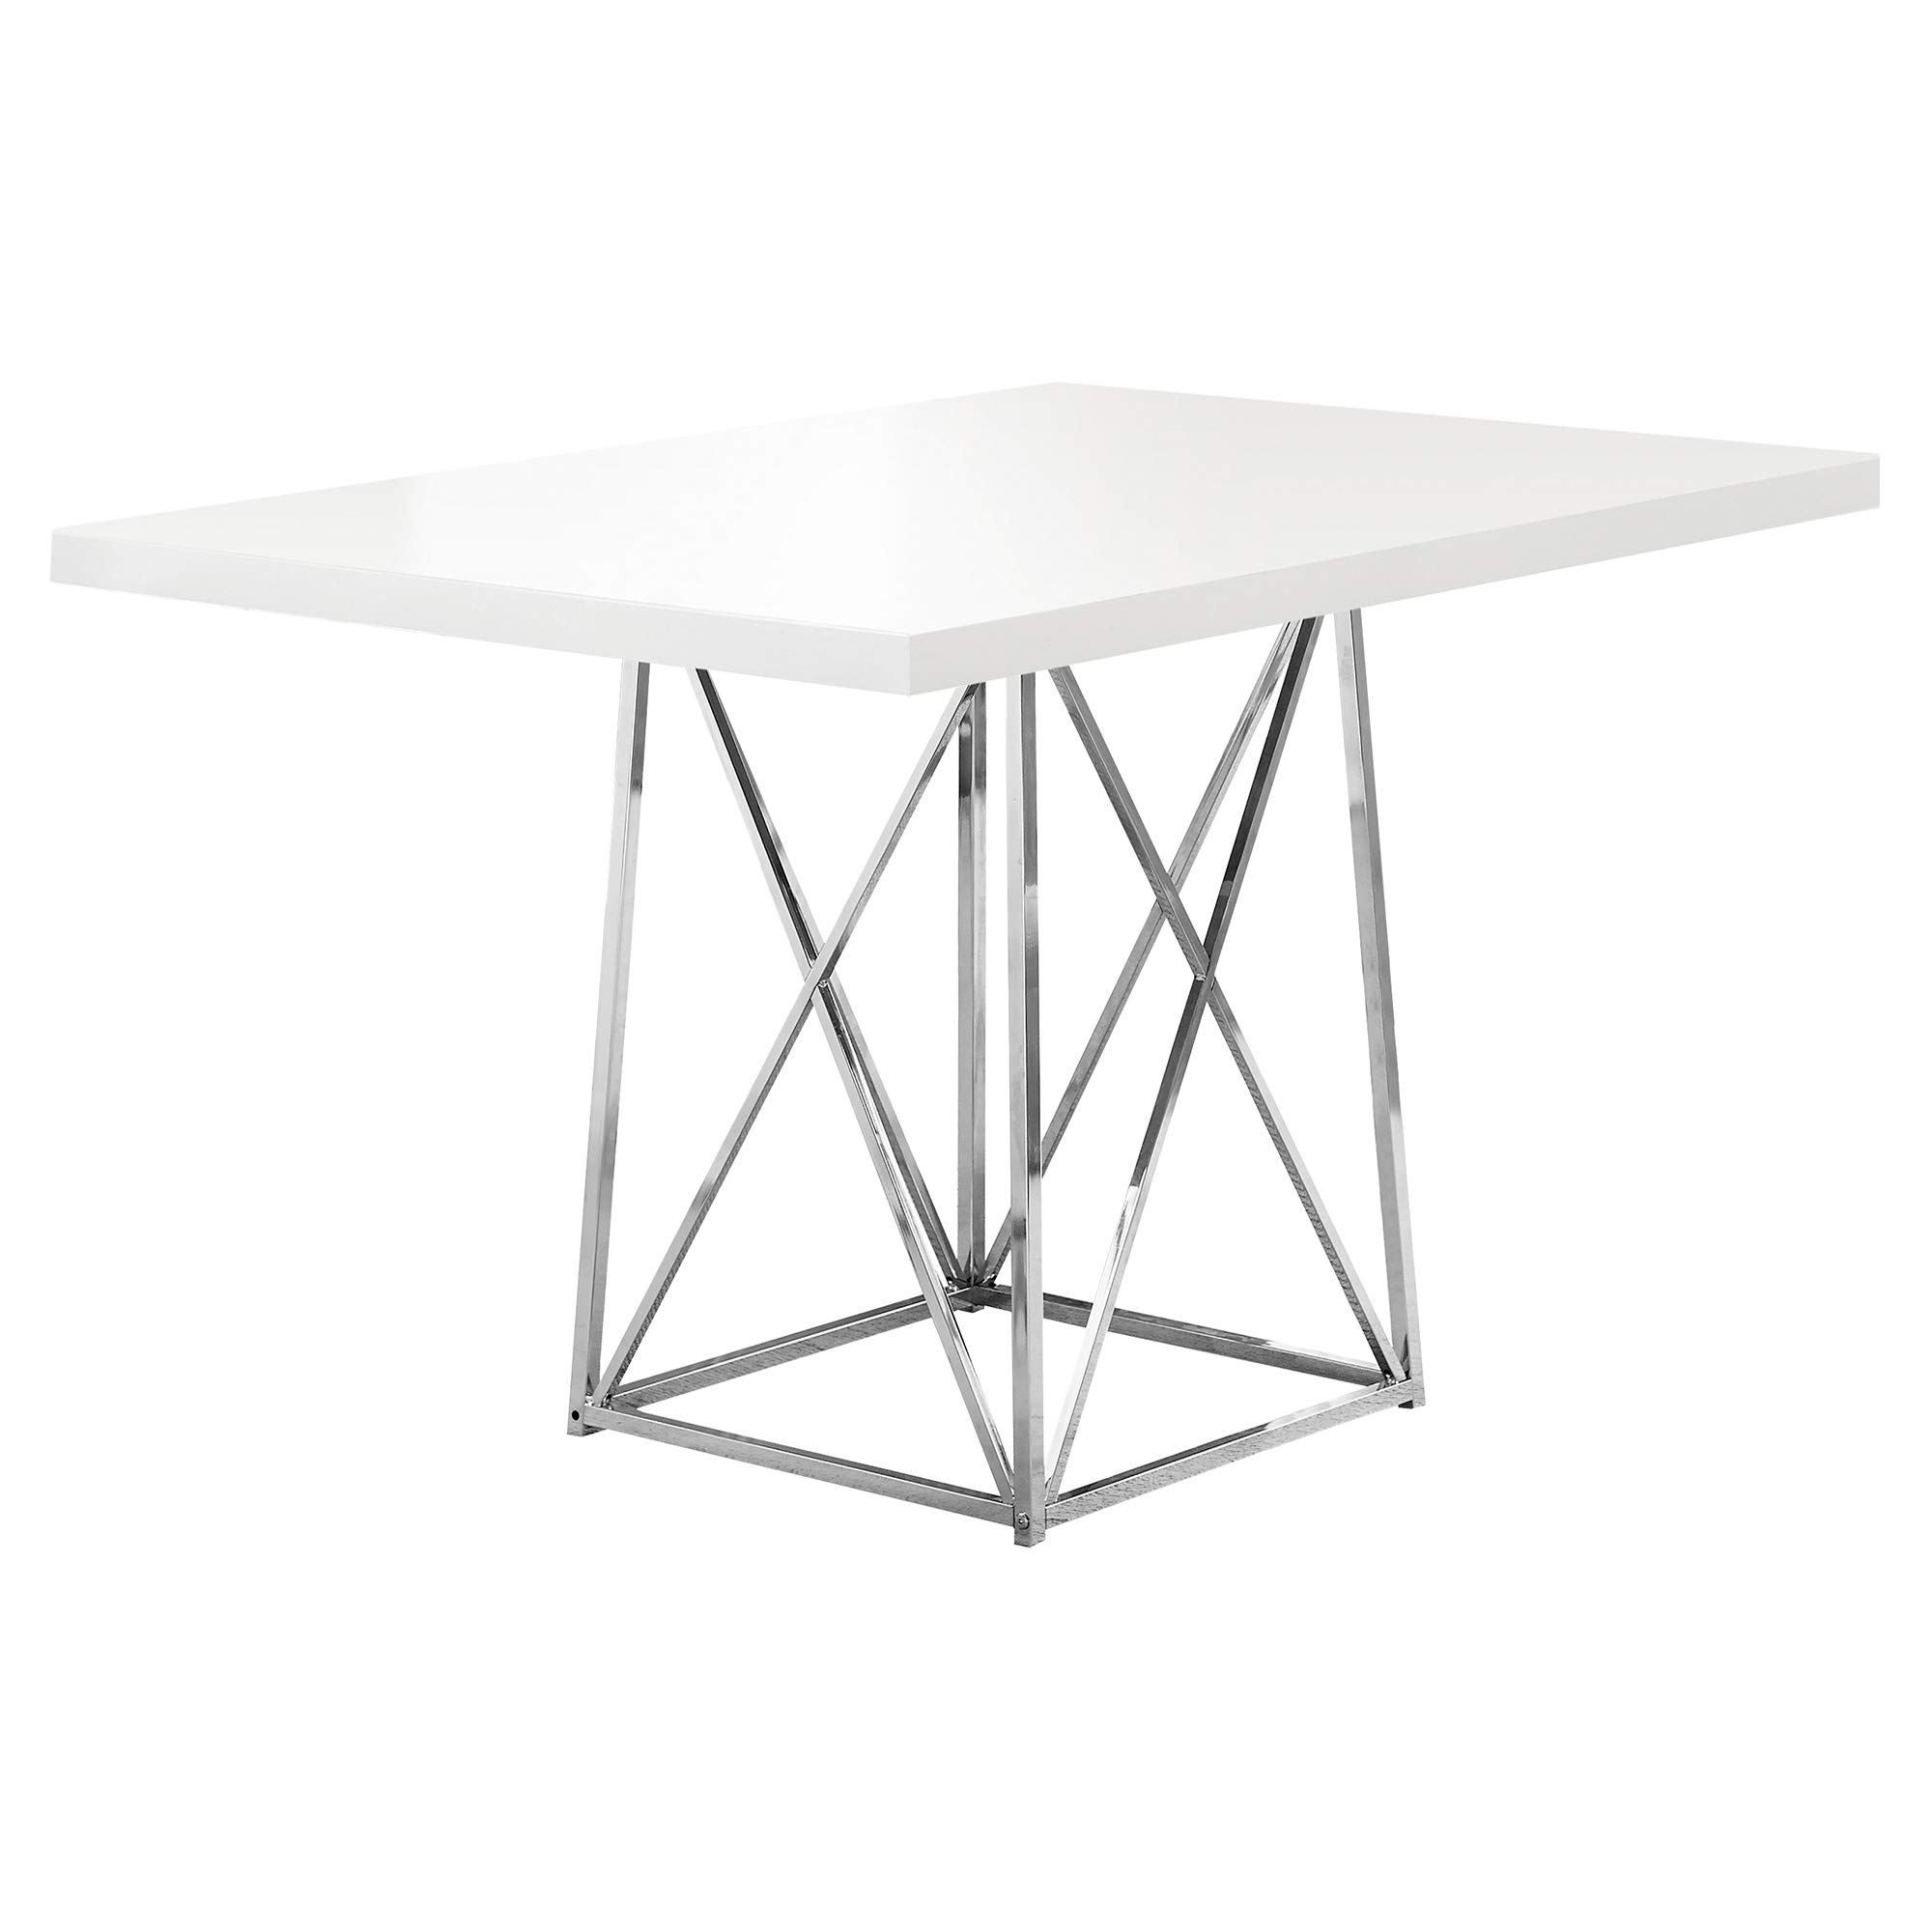 Monarch I 1046 36 by 48-Inch Dining Table, White Glossy / Chrome Metal by Monarch Specialties